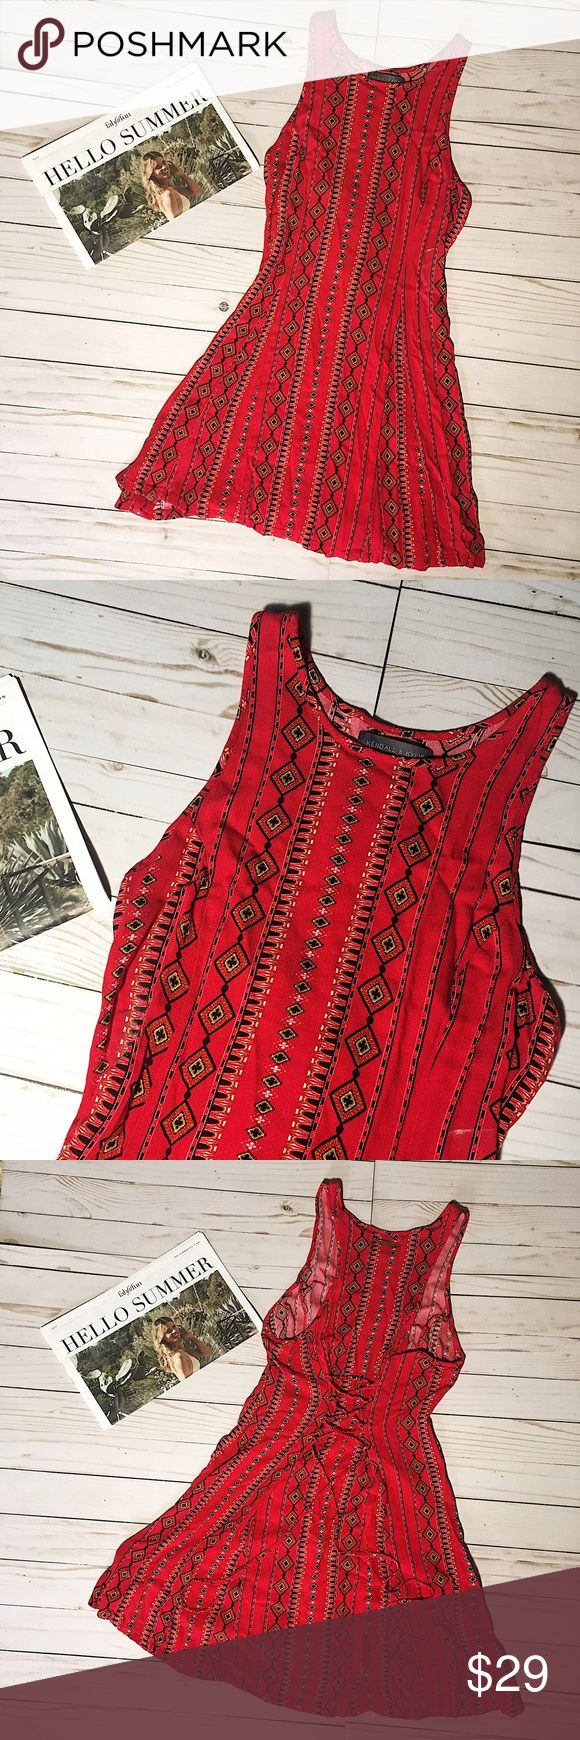 "Kendall & Kylie Red Aztec Print Dress Size S Kendall & Kylie dress. Excellent used condition no signs of wear- no holes or stains. You can tie the dress at the back like a corset. Has a small gold plate on the back of the neck with ""Kendall & Kylie"" engraved on it. Dress measures approximately 27in in length from top of shoulder to hem. Kendall & Kylie Dresses"